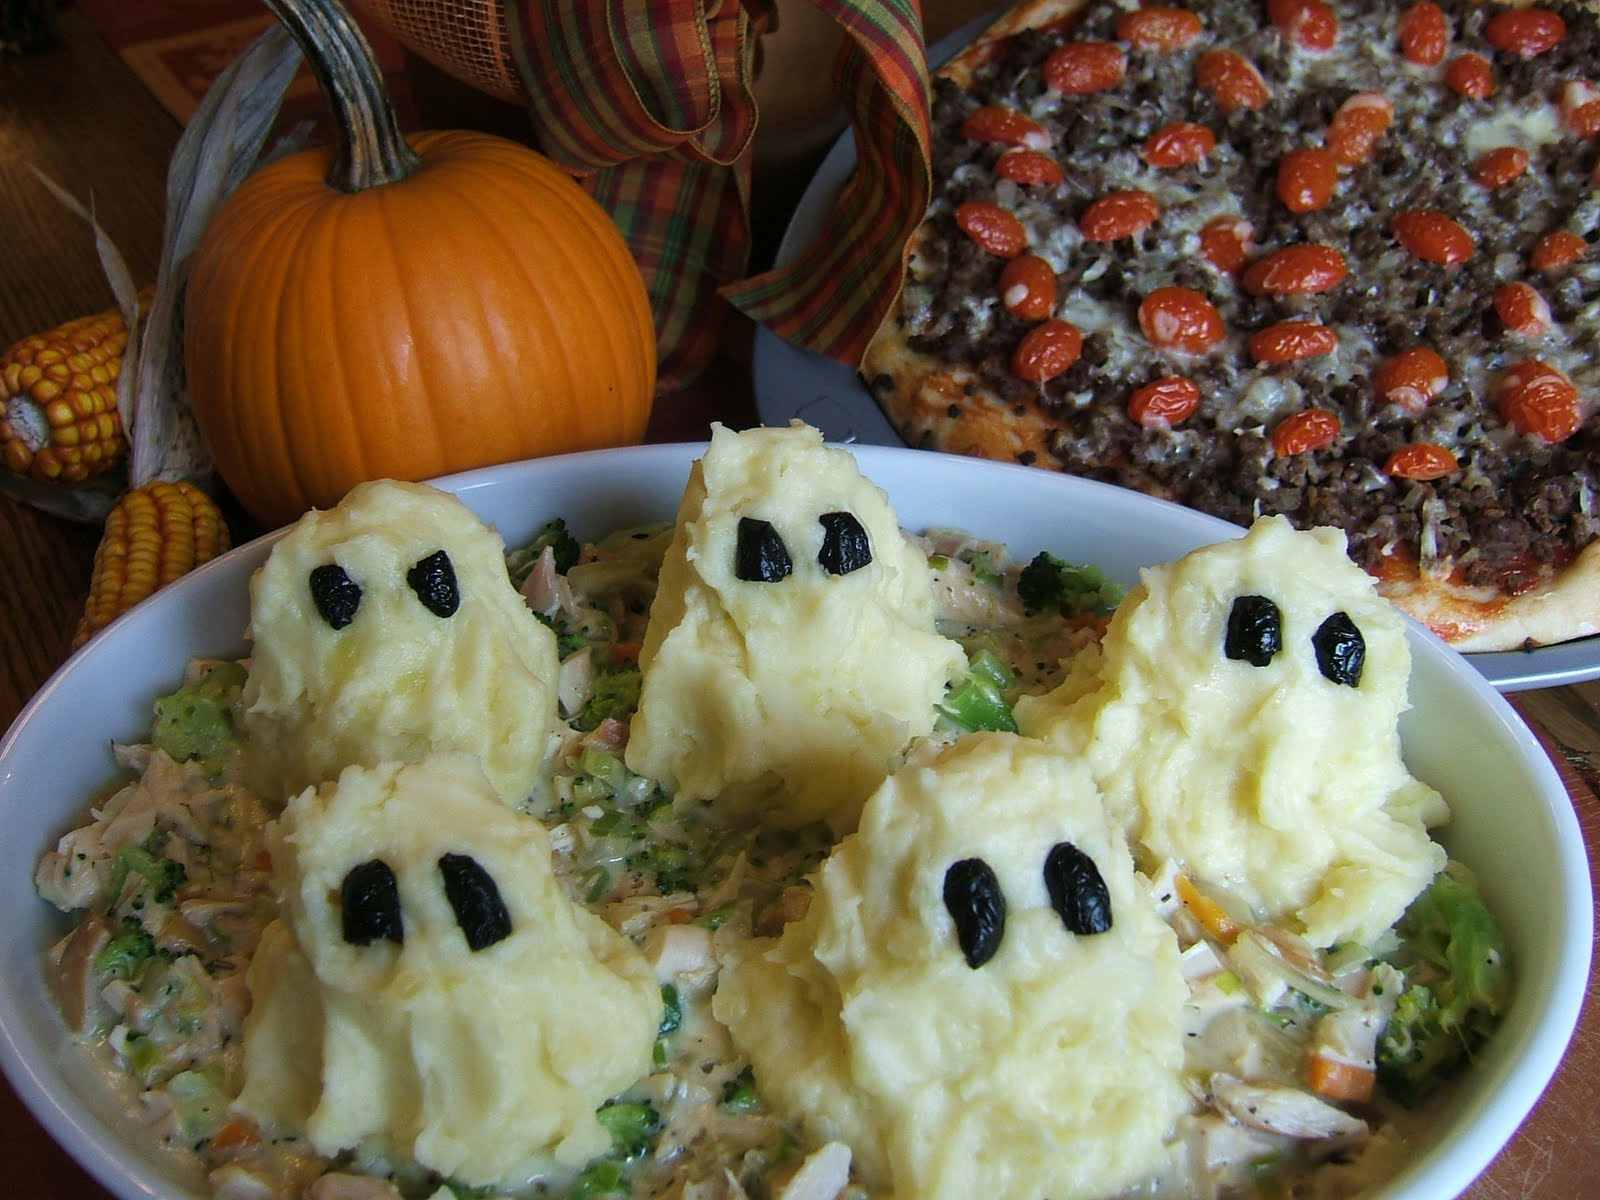 Halloween Dinner Recipes With Pictures.Halloween Family Dinner Recipes